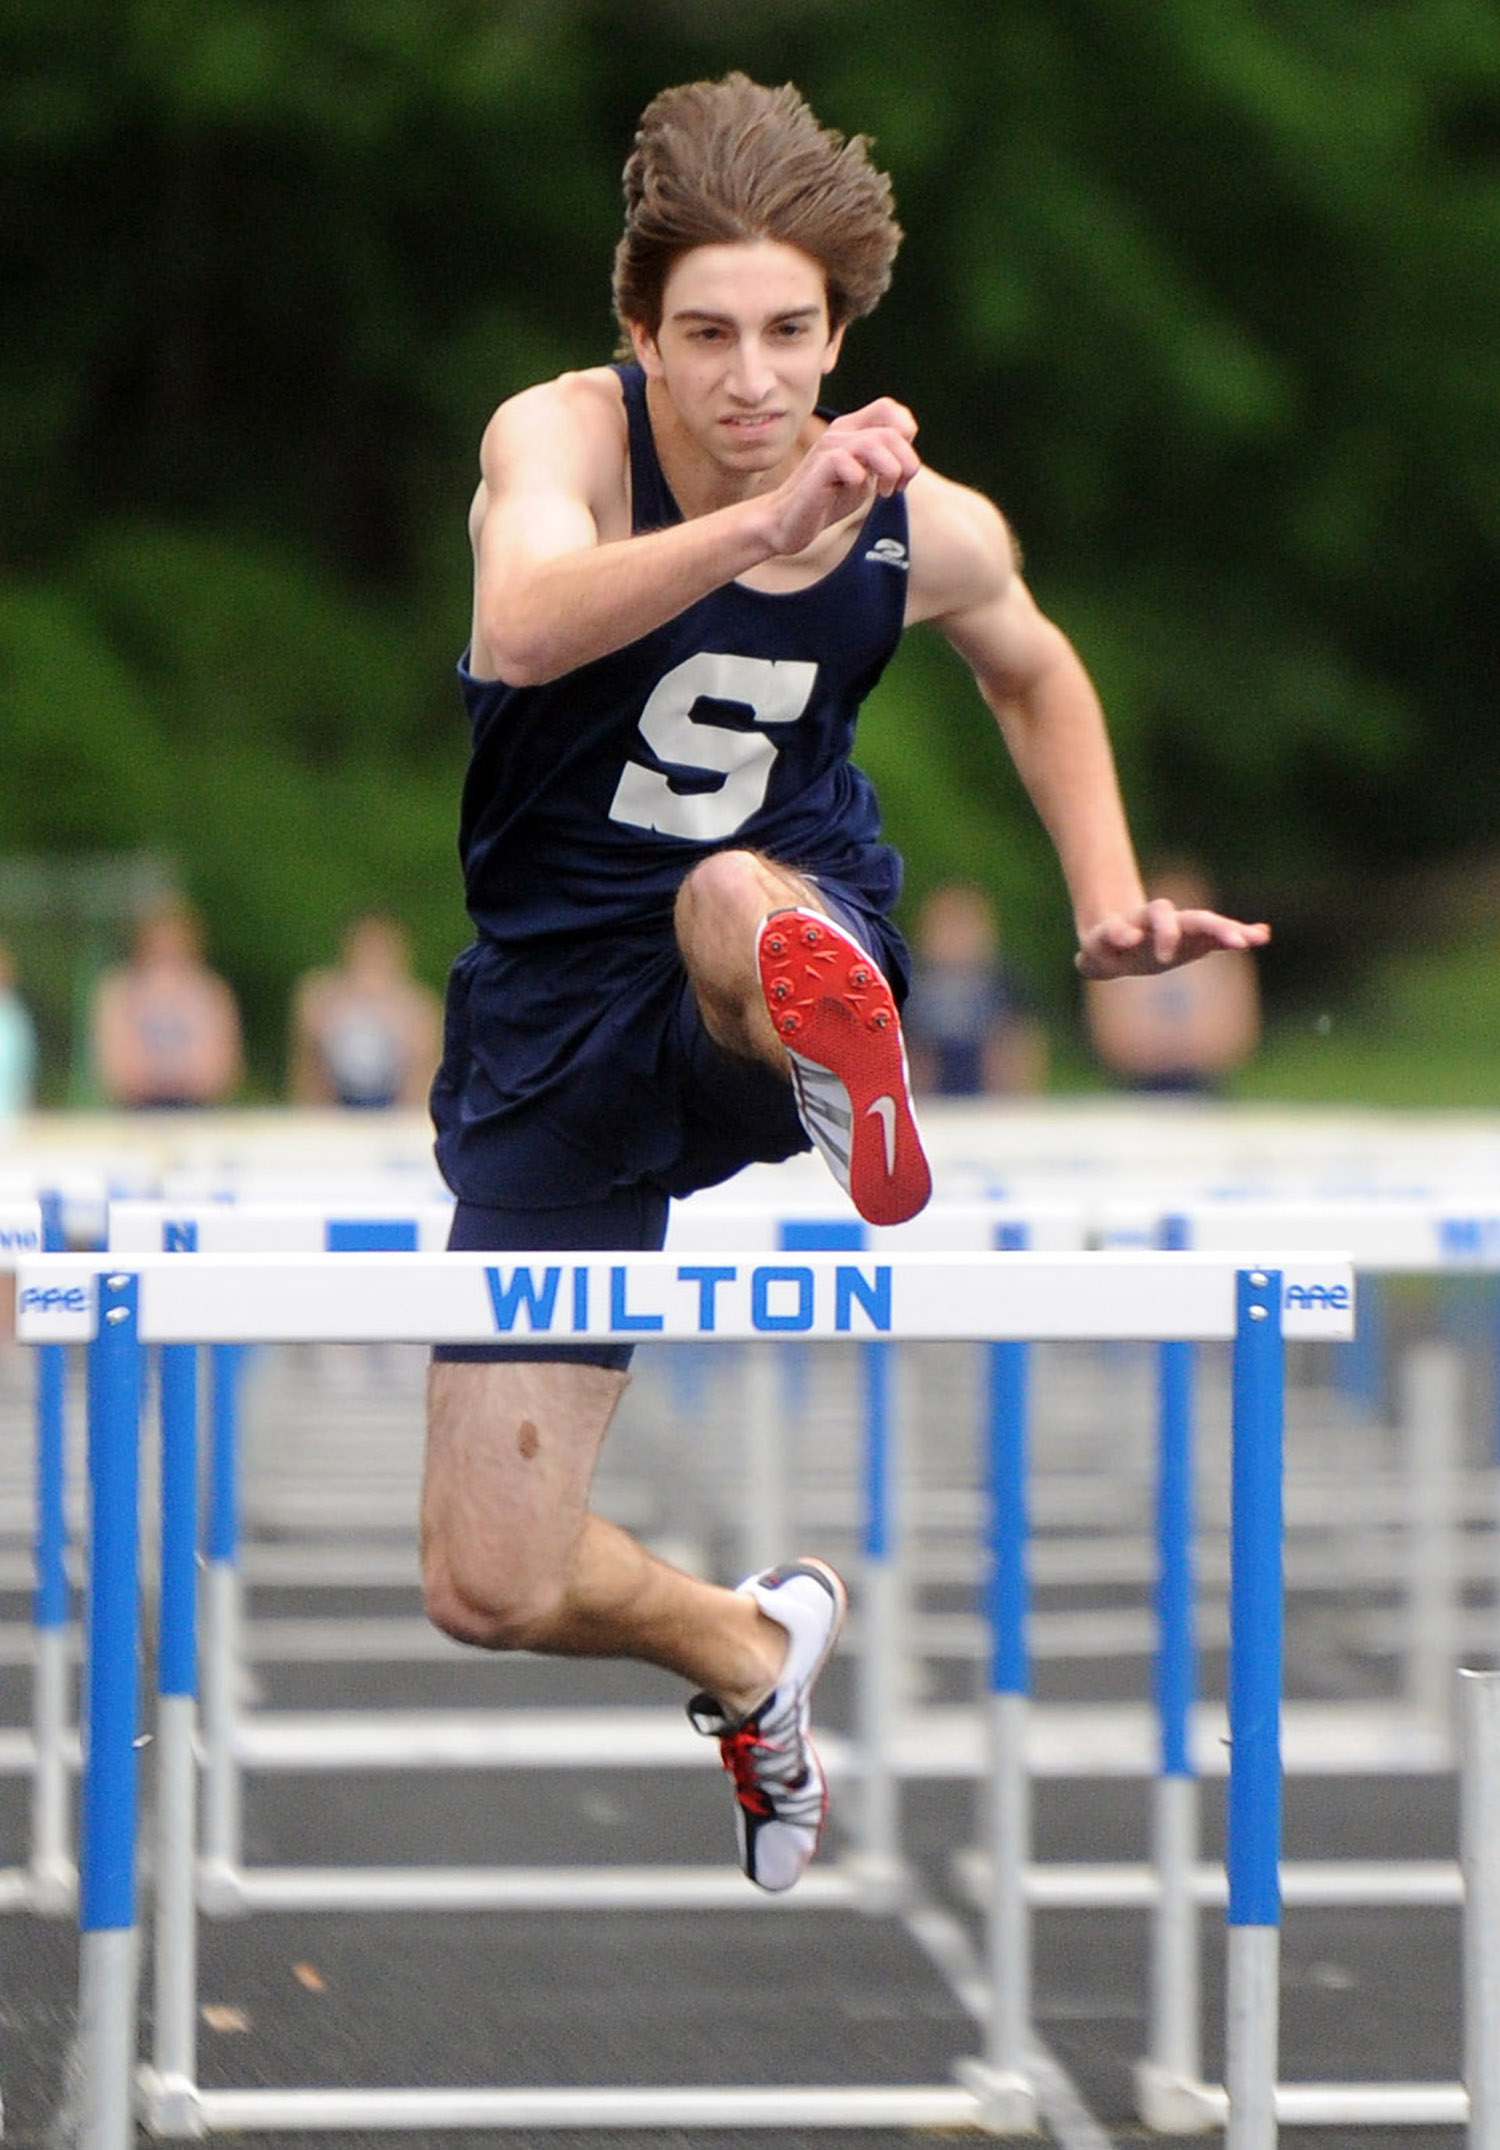 Todd Lubin jumps a hurdle during a track meet at Wilton High School on May 19, 2011.